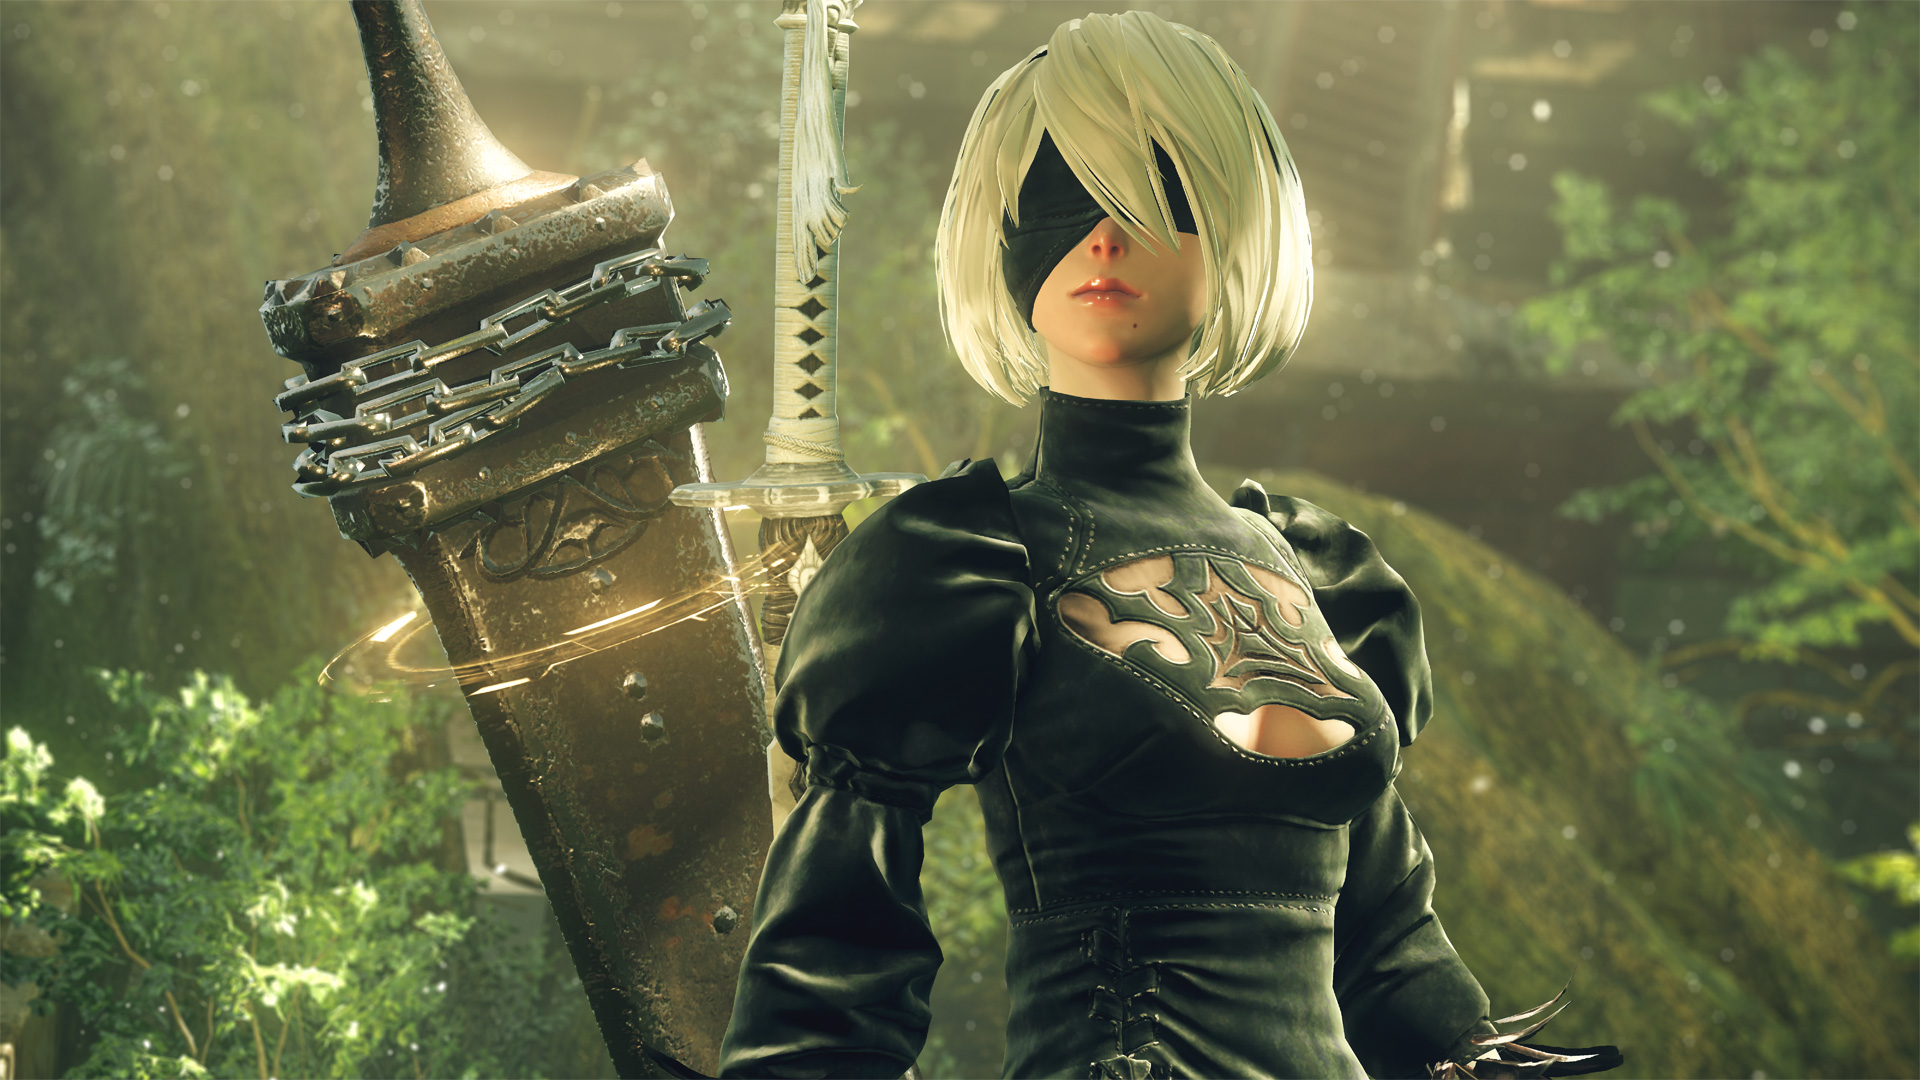 download nier automata day one edition update 1 with dlcs repack by fitgirl singlelink iso rar part kumpulbagi kutucugum partagora